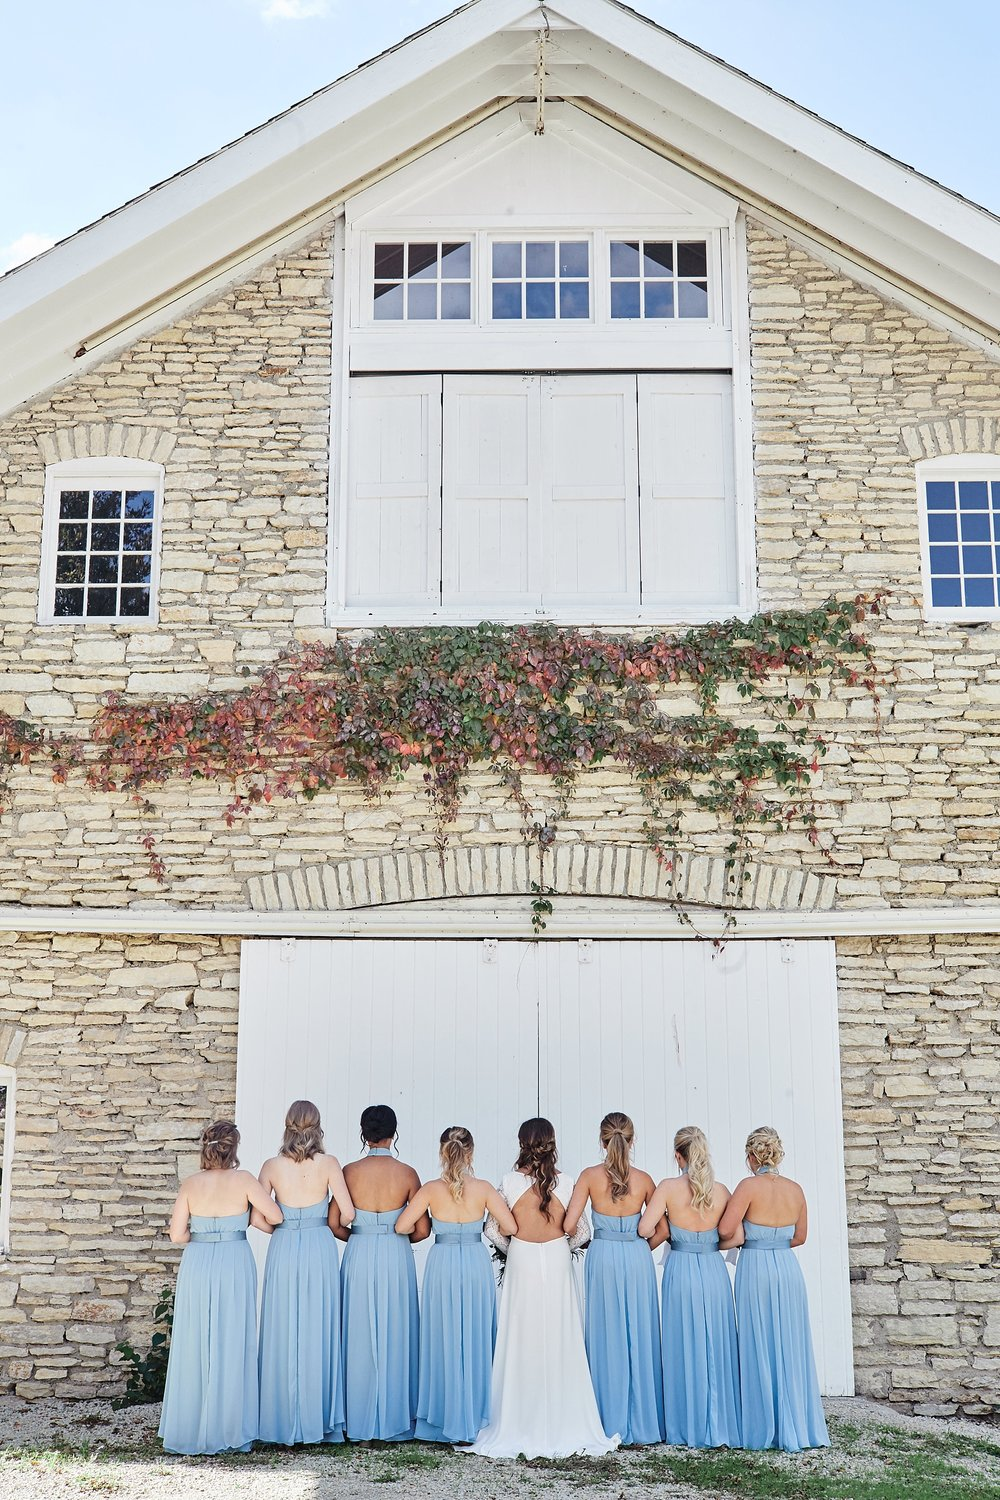 Maywood-Stone-Barn-Wedding-Rochester-Minnesota-Perry-James-Photo_0605.jpg